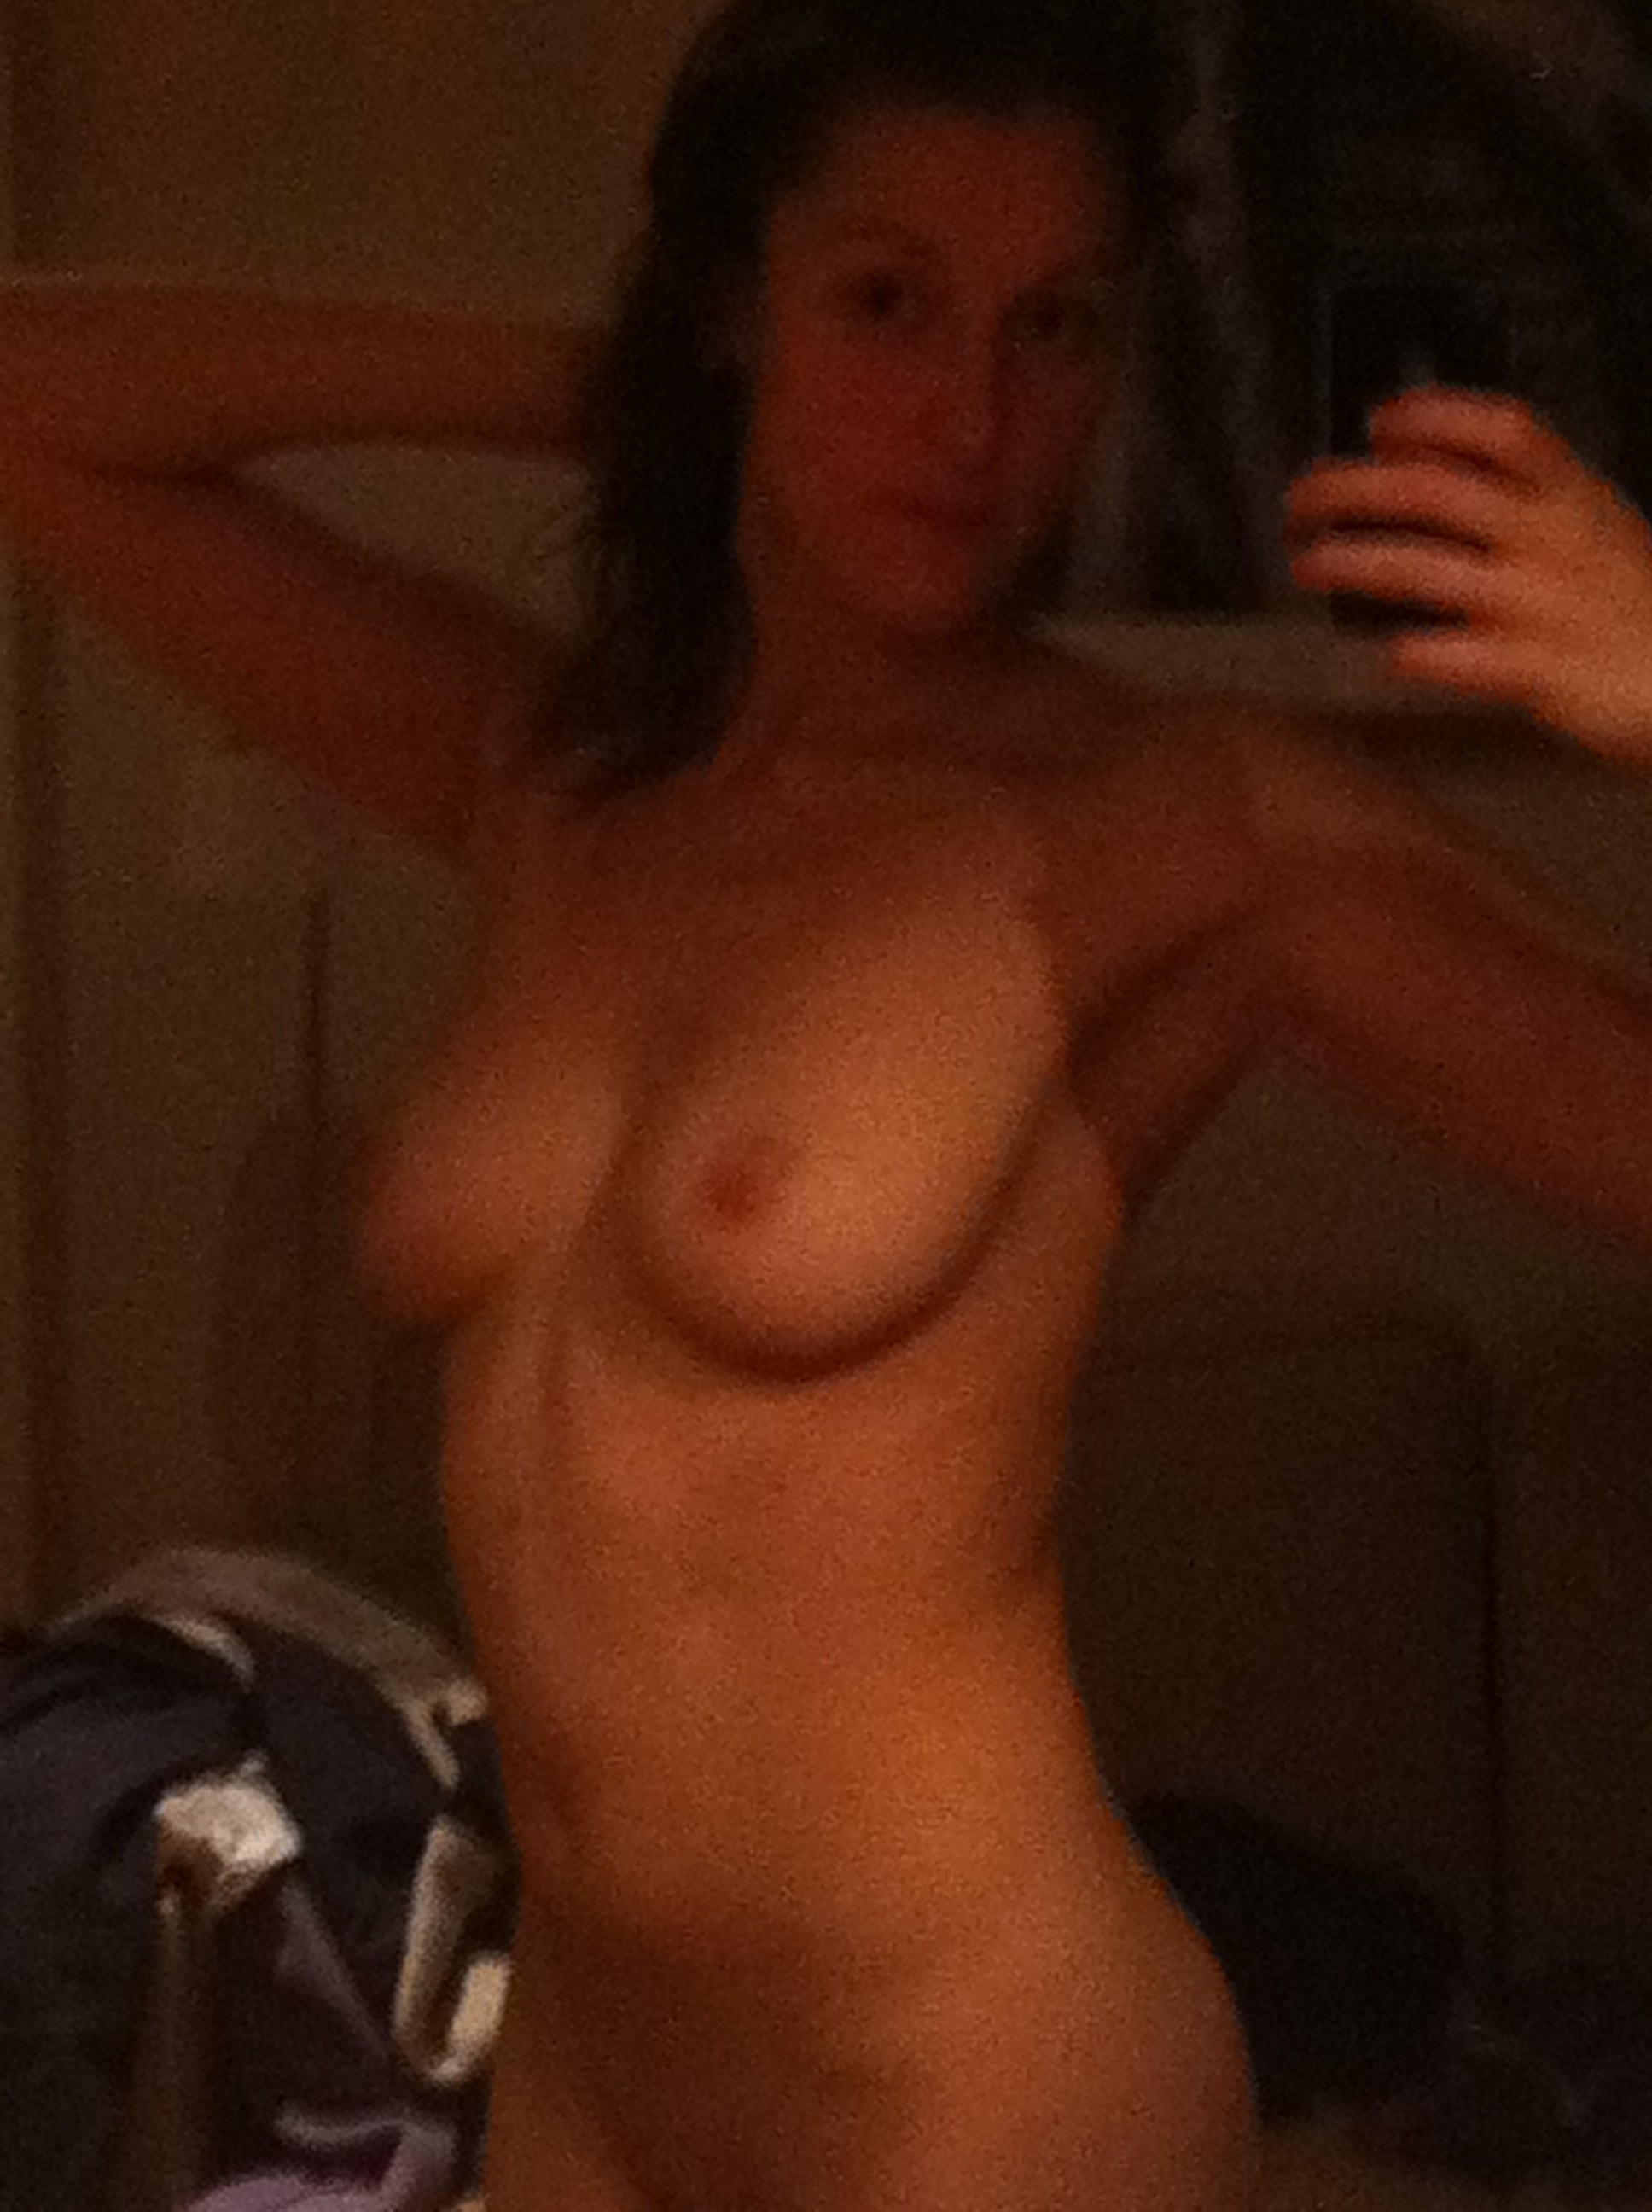 Michelle Antrobus Nude Photos, BJ and Tits